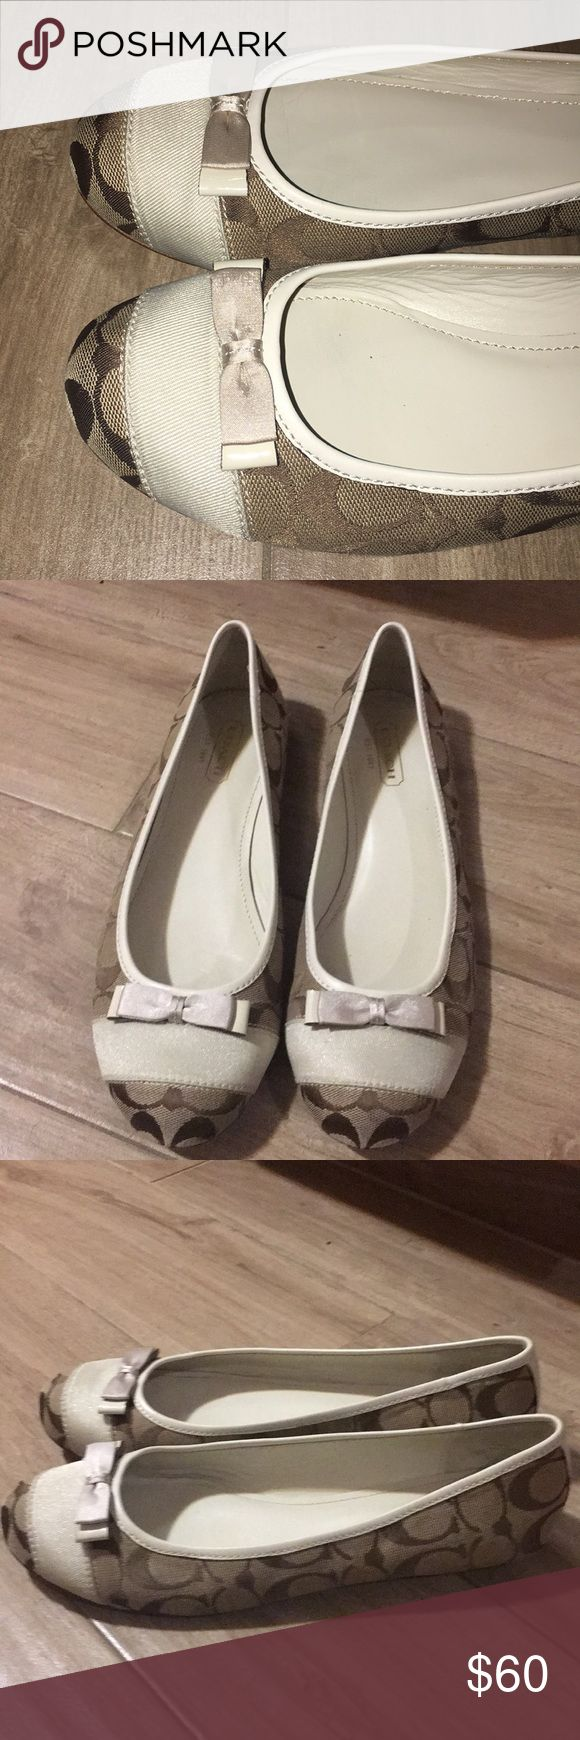 Beautiful Coach Flats Beautiful authentic Coach flats. Excellent condition outside only souls looks used otherwise looks great. No flaws at all. Size 9.5. Retail $118 paid $78. Coach Shoes Flats & Loafers